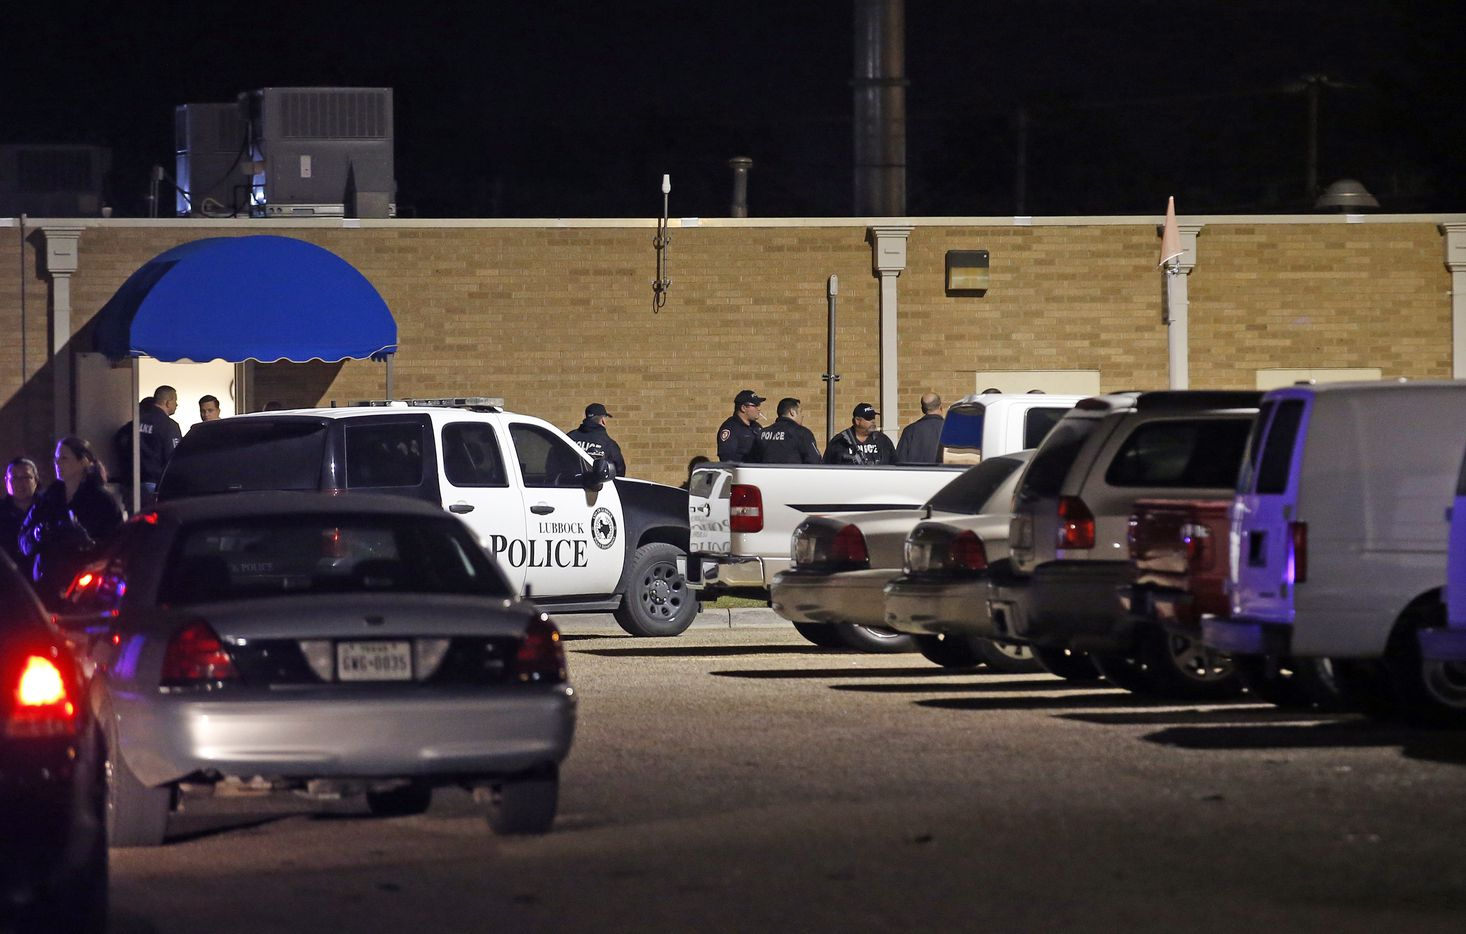 Police officers work the scene of a shooting at the Texas Tech Police Department.